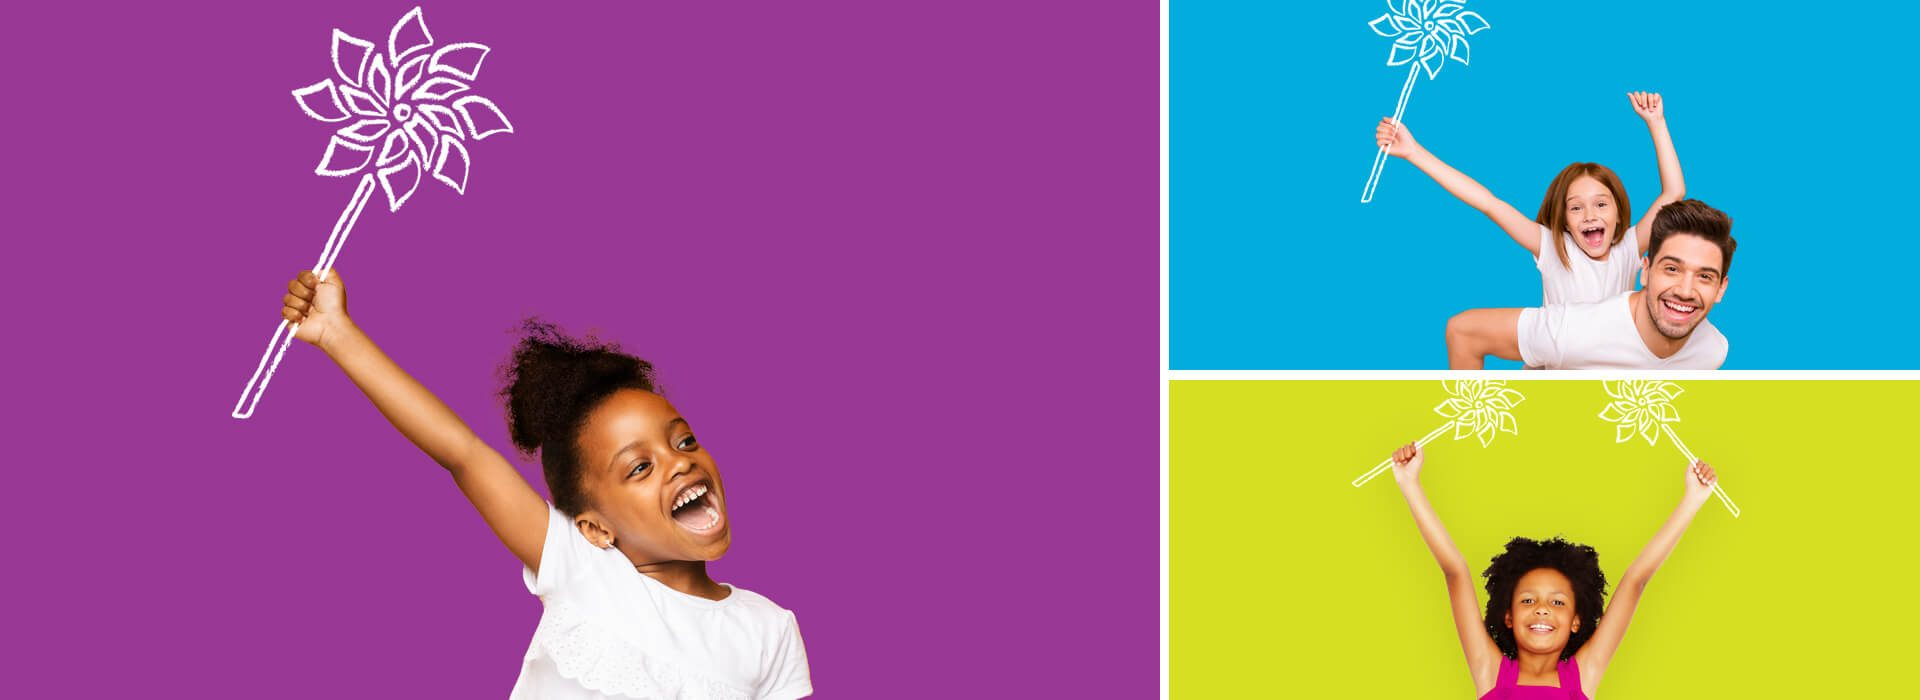 Collage of kids holding pinwheels over bright backgrounds